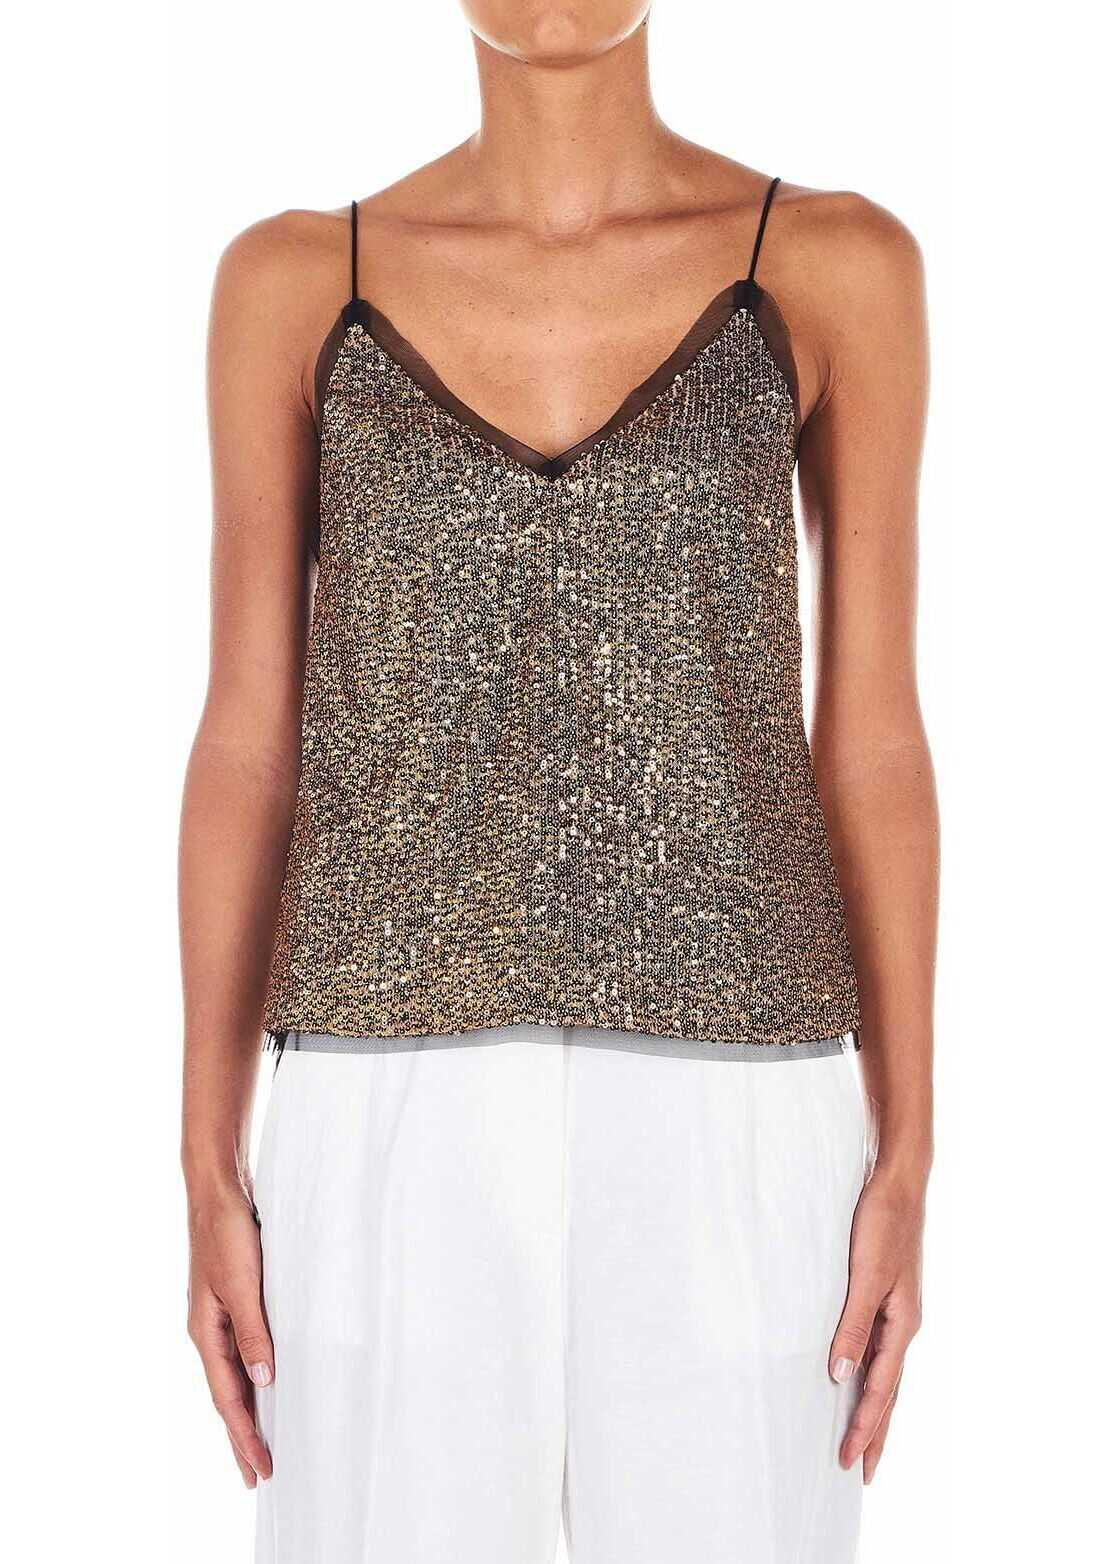 Liu Jo Top with sequins* Gold